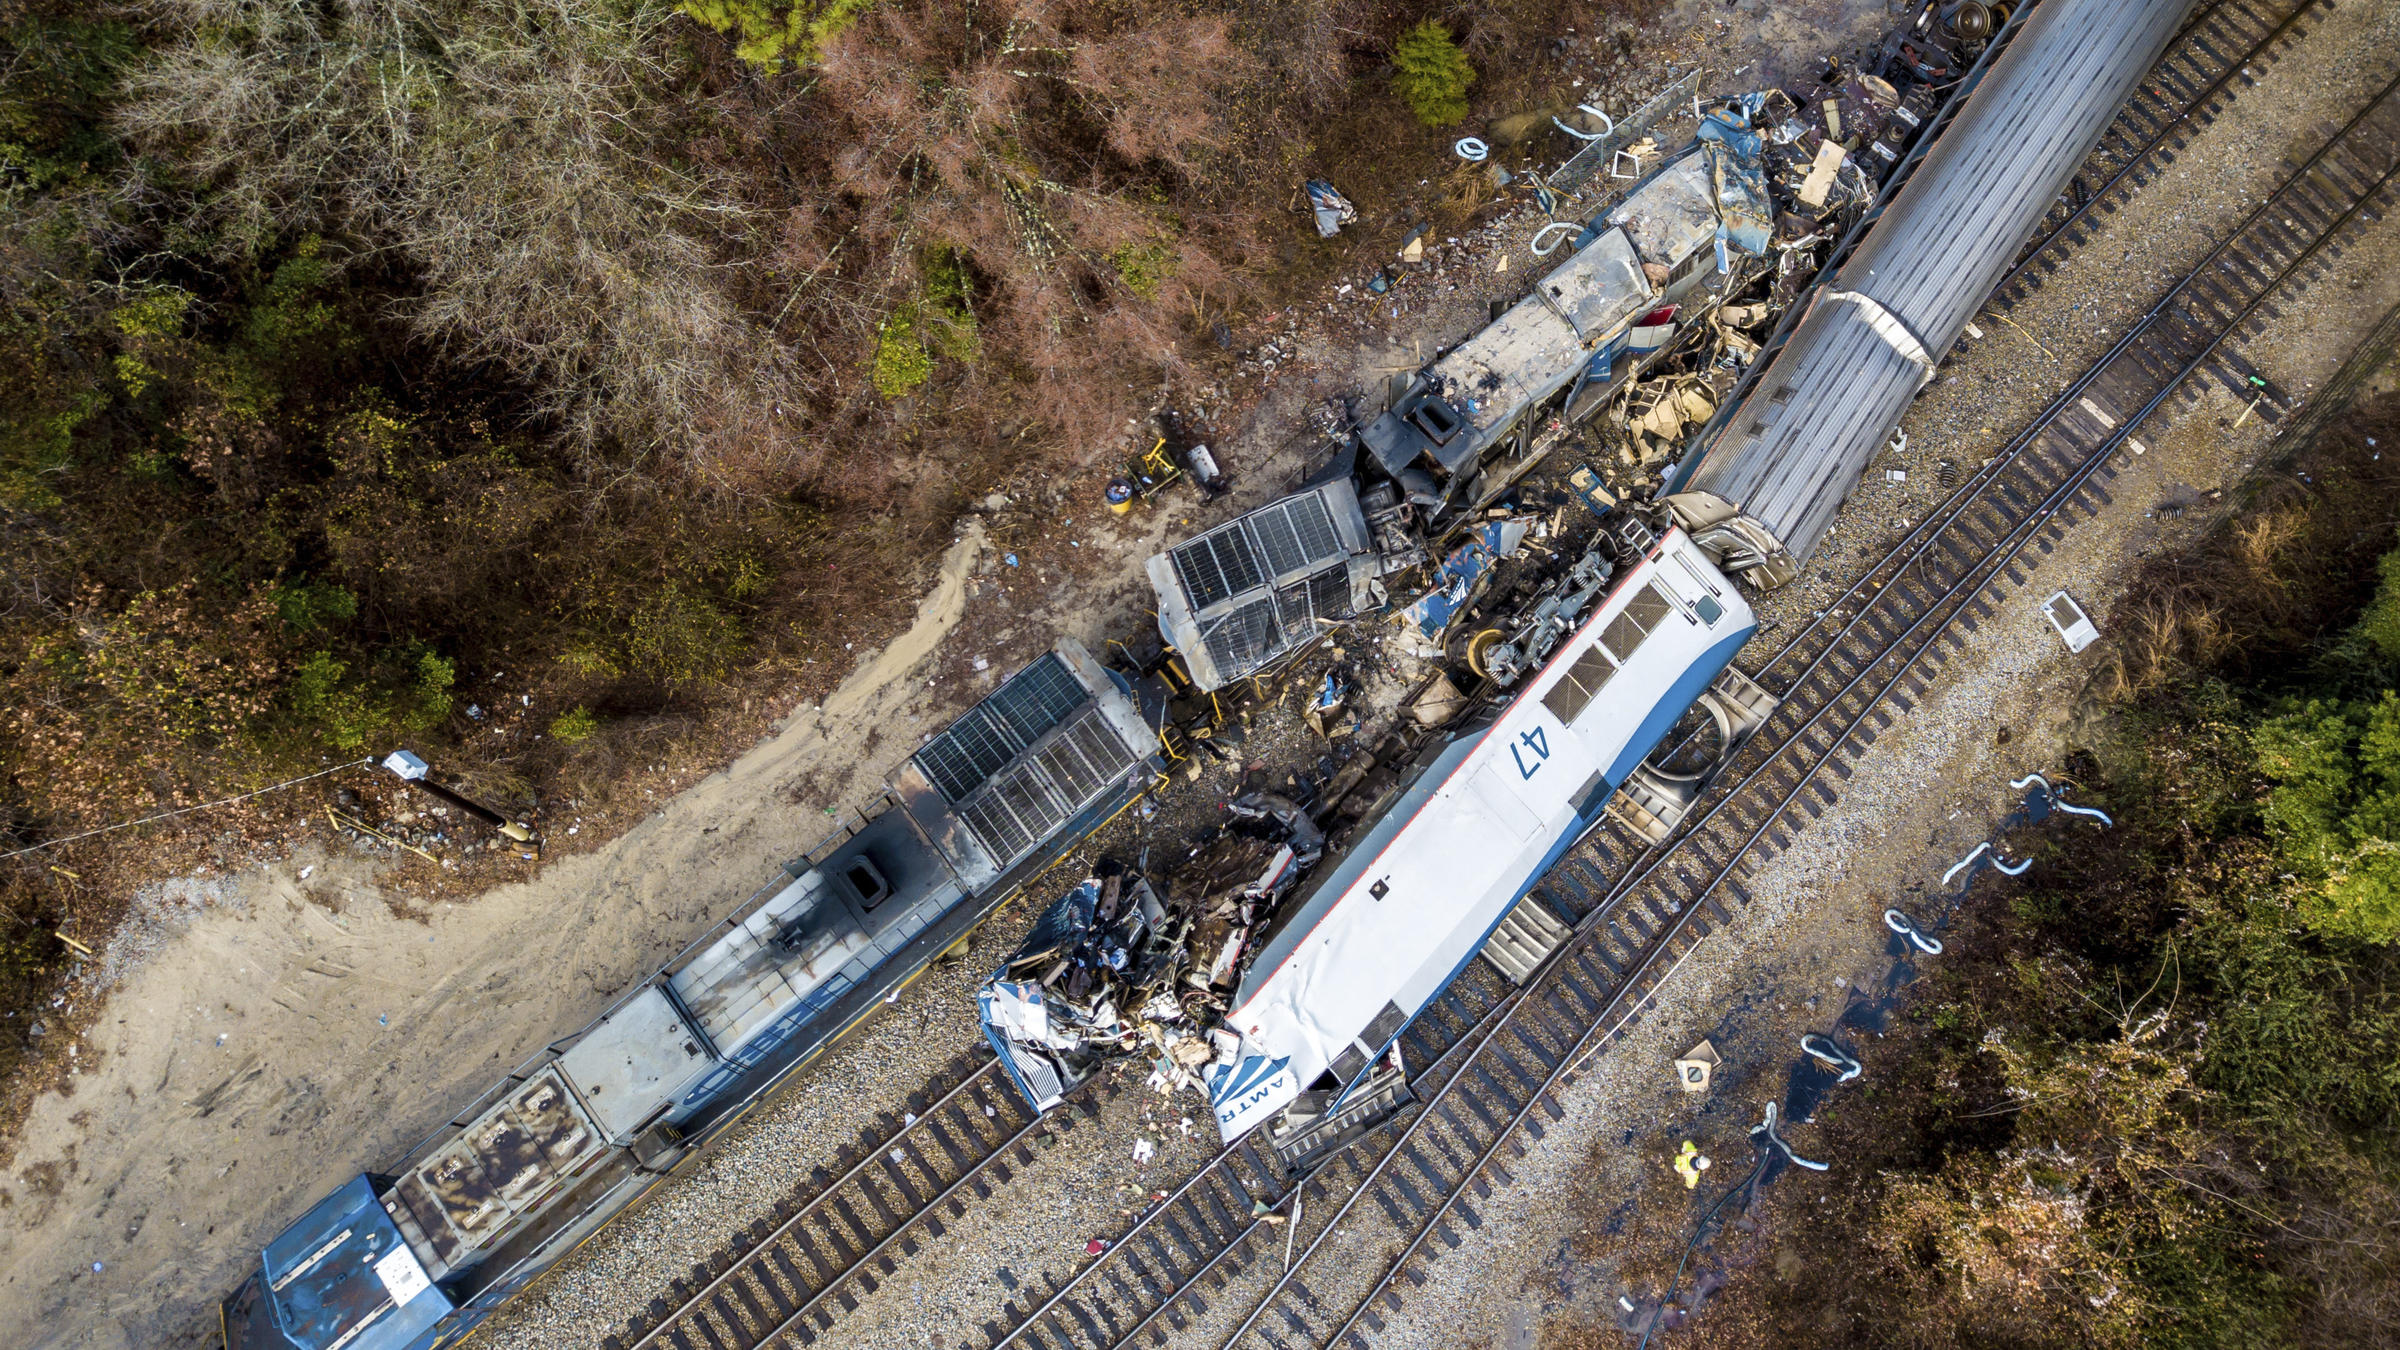 GPS System Could Have Prevented Deadly Train Accident